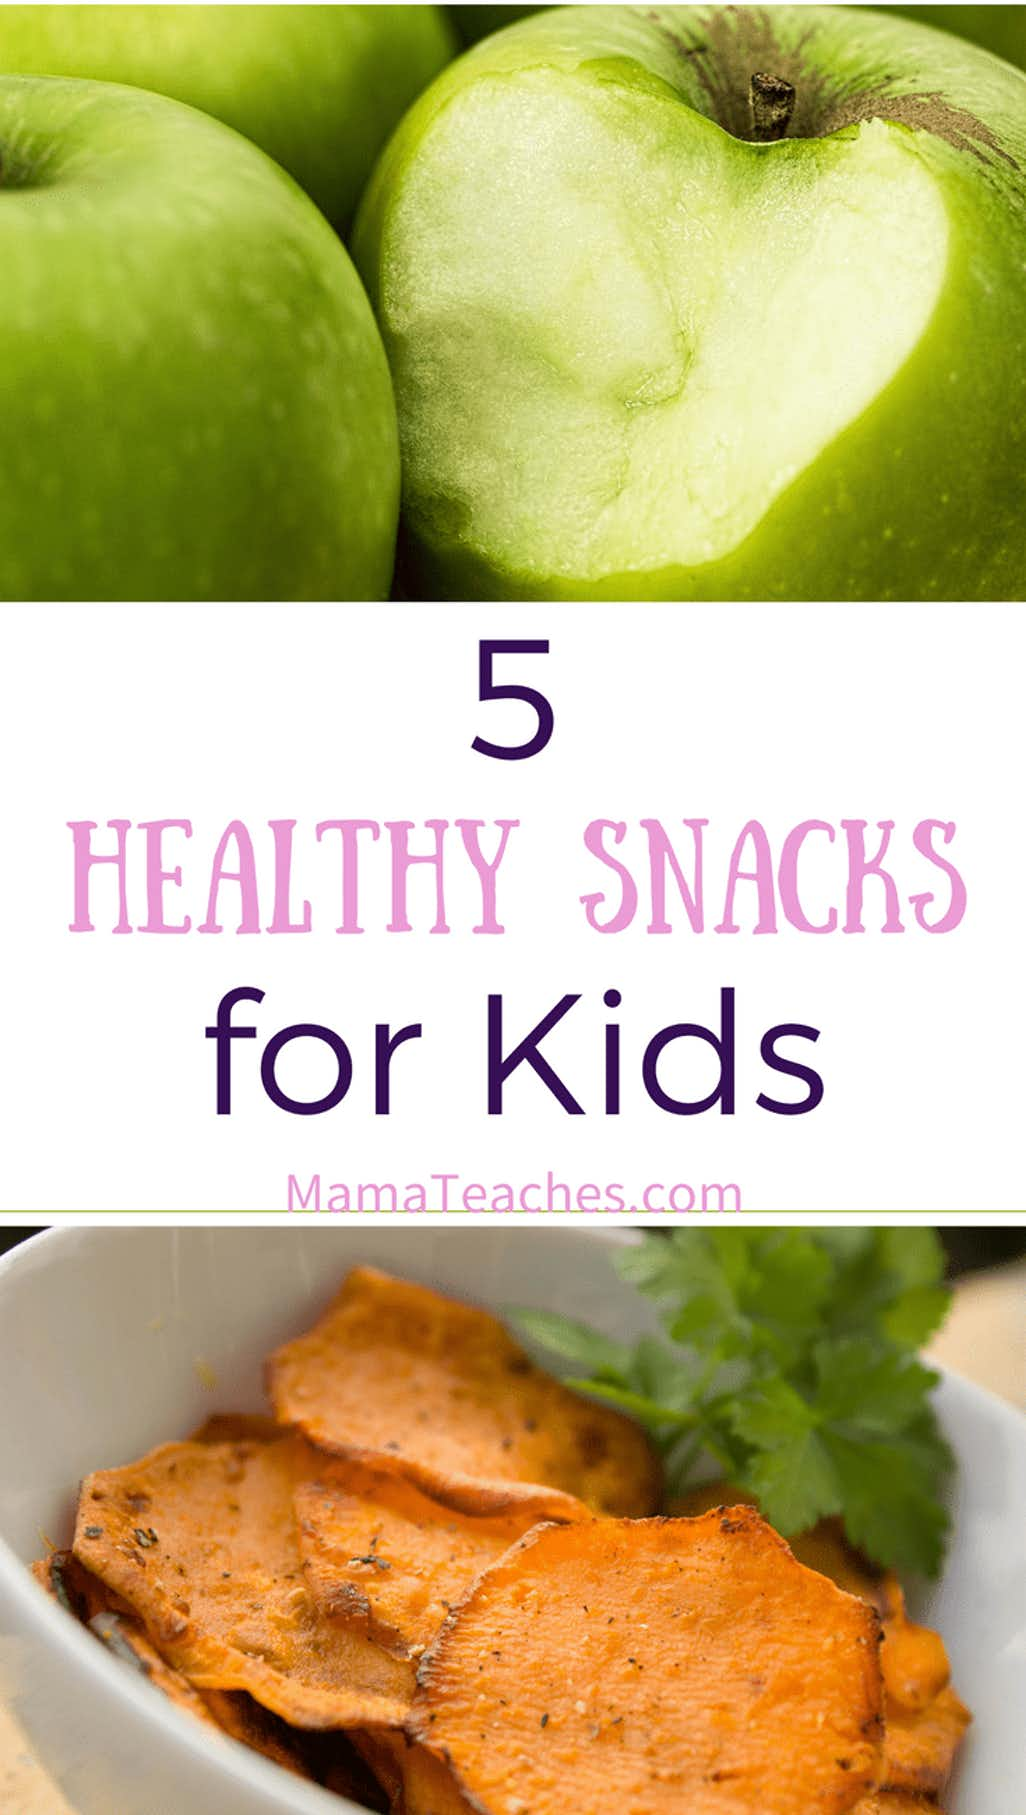 5 Delicious and Healthy Snacks for Kids